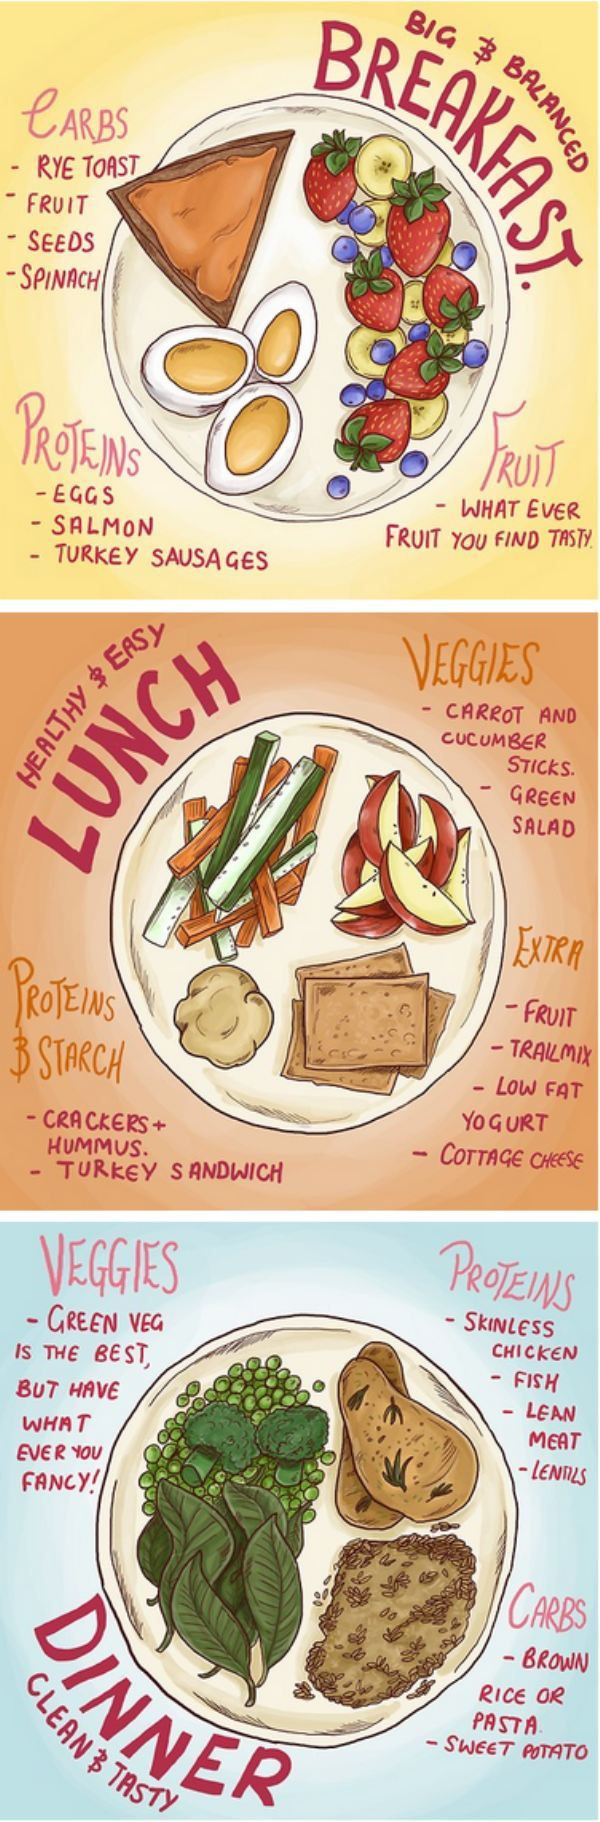 Healthy Breakfast Lunch And Dinner Chart  Healthy breakfast lunch & dinner ideas